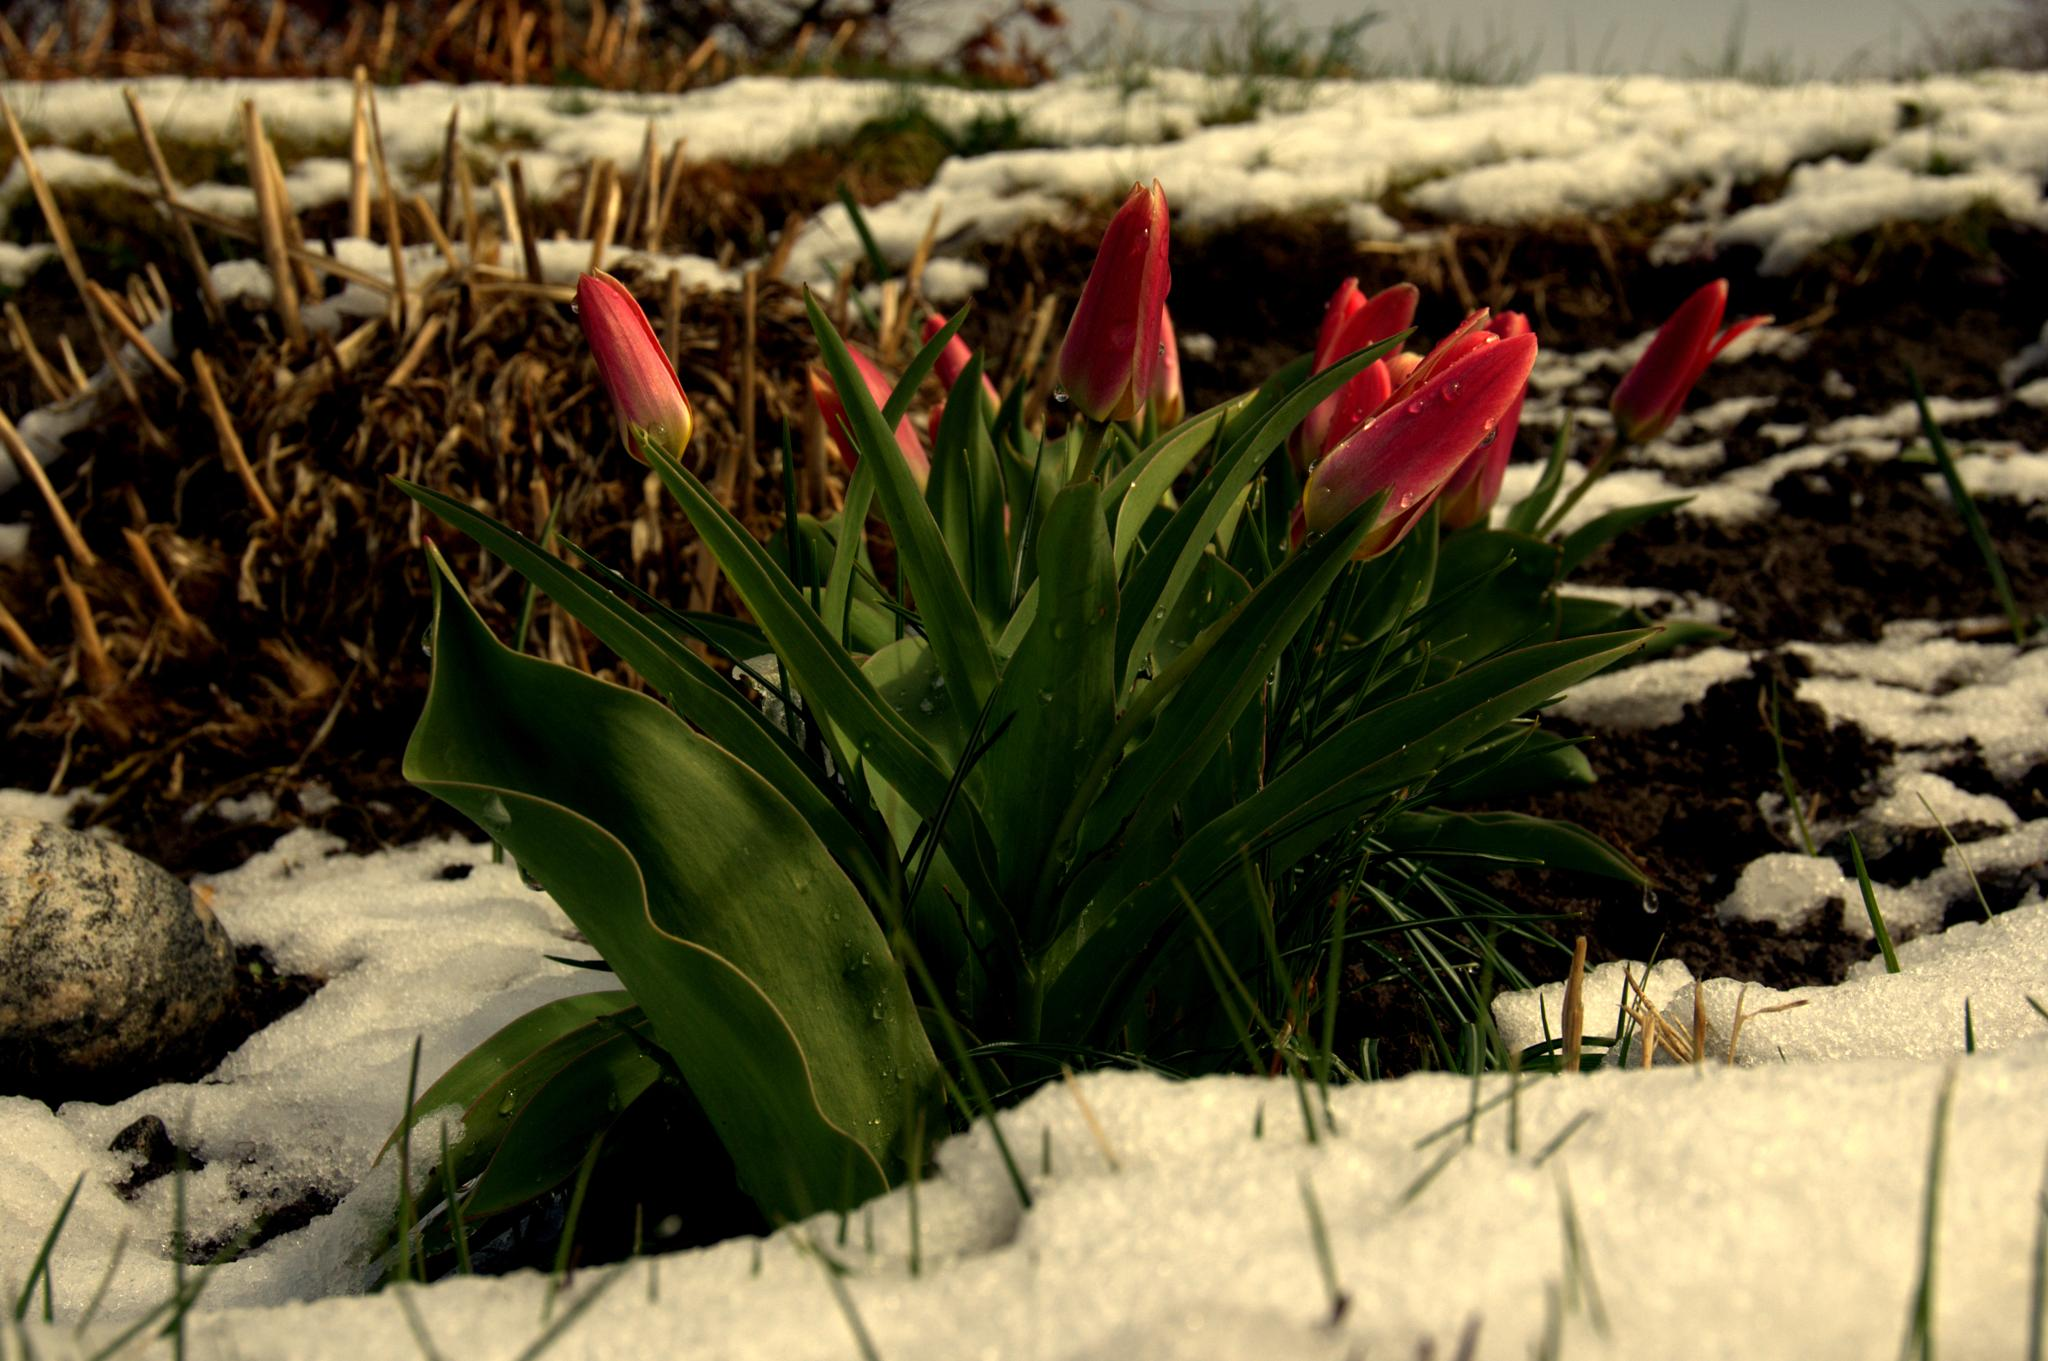 #Tulip#Snow#Norway# by anne.l.brunstad